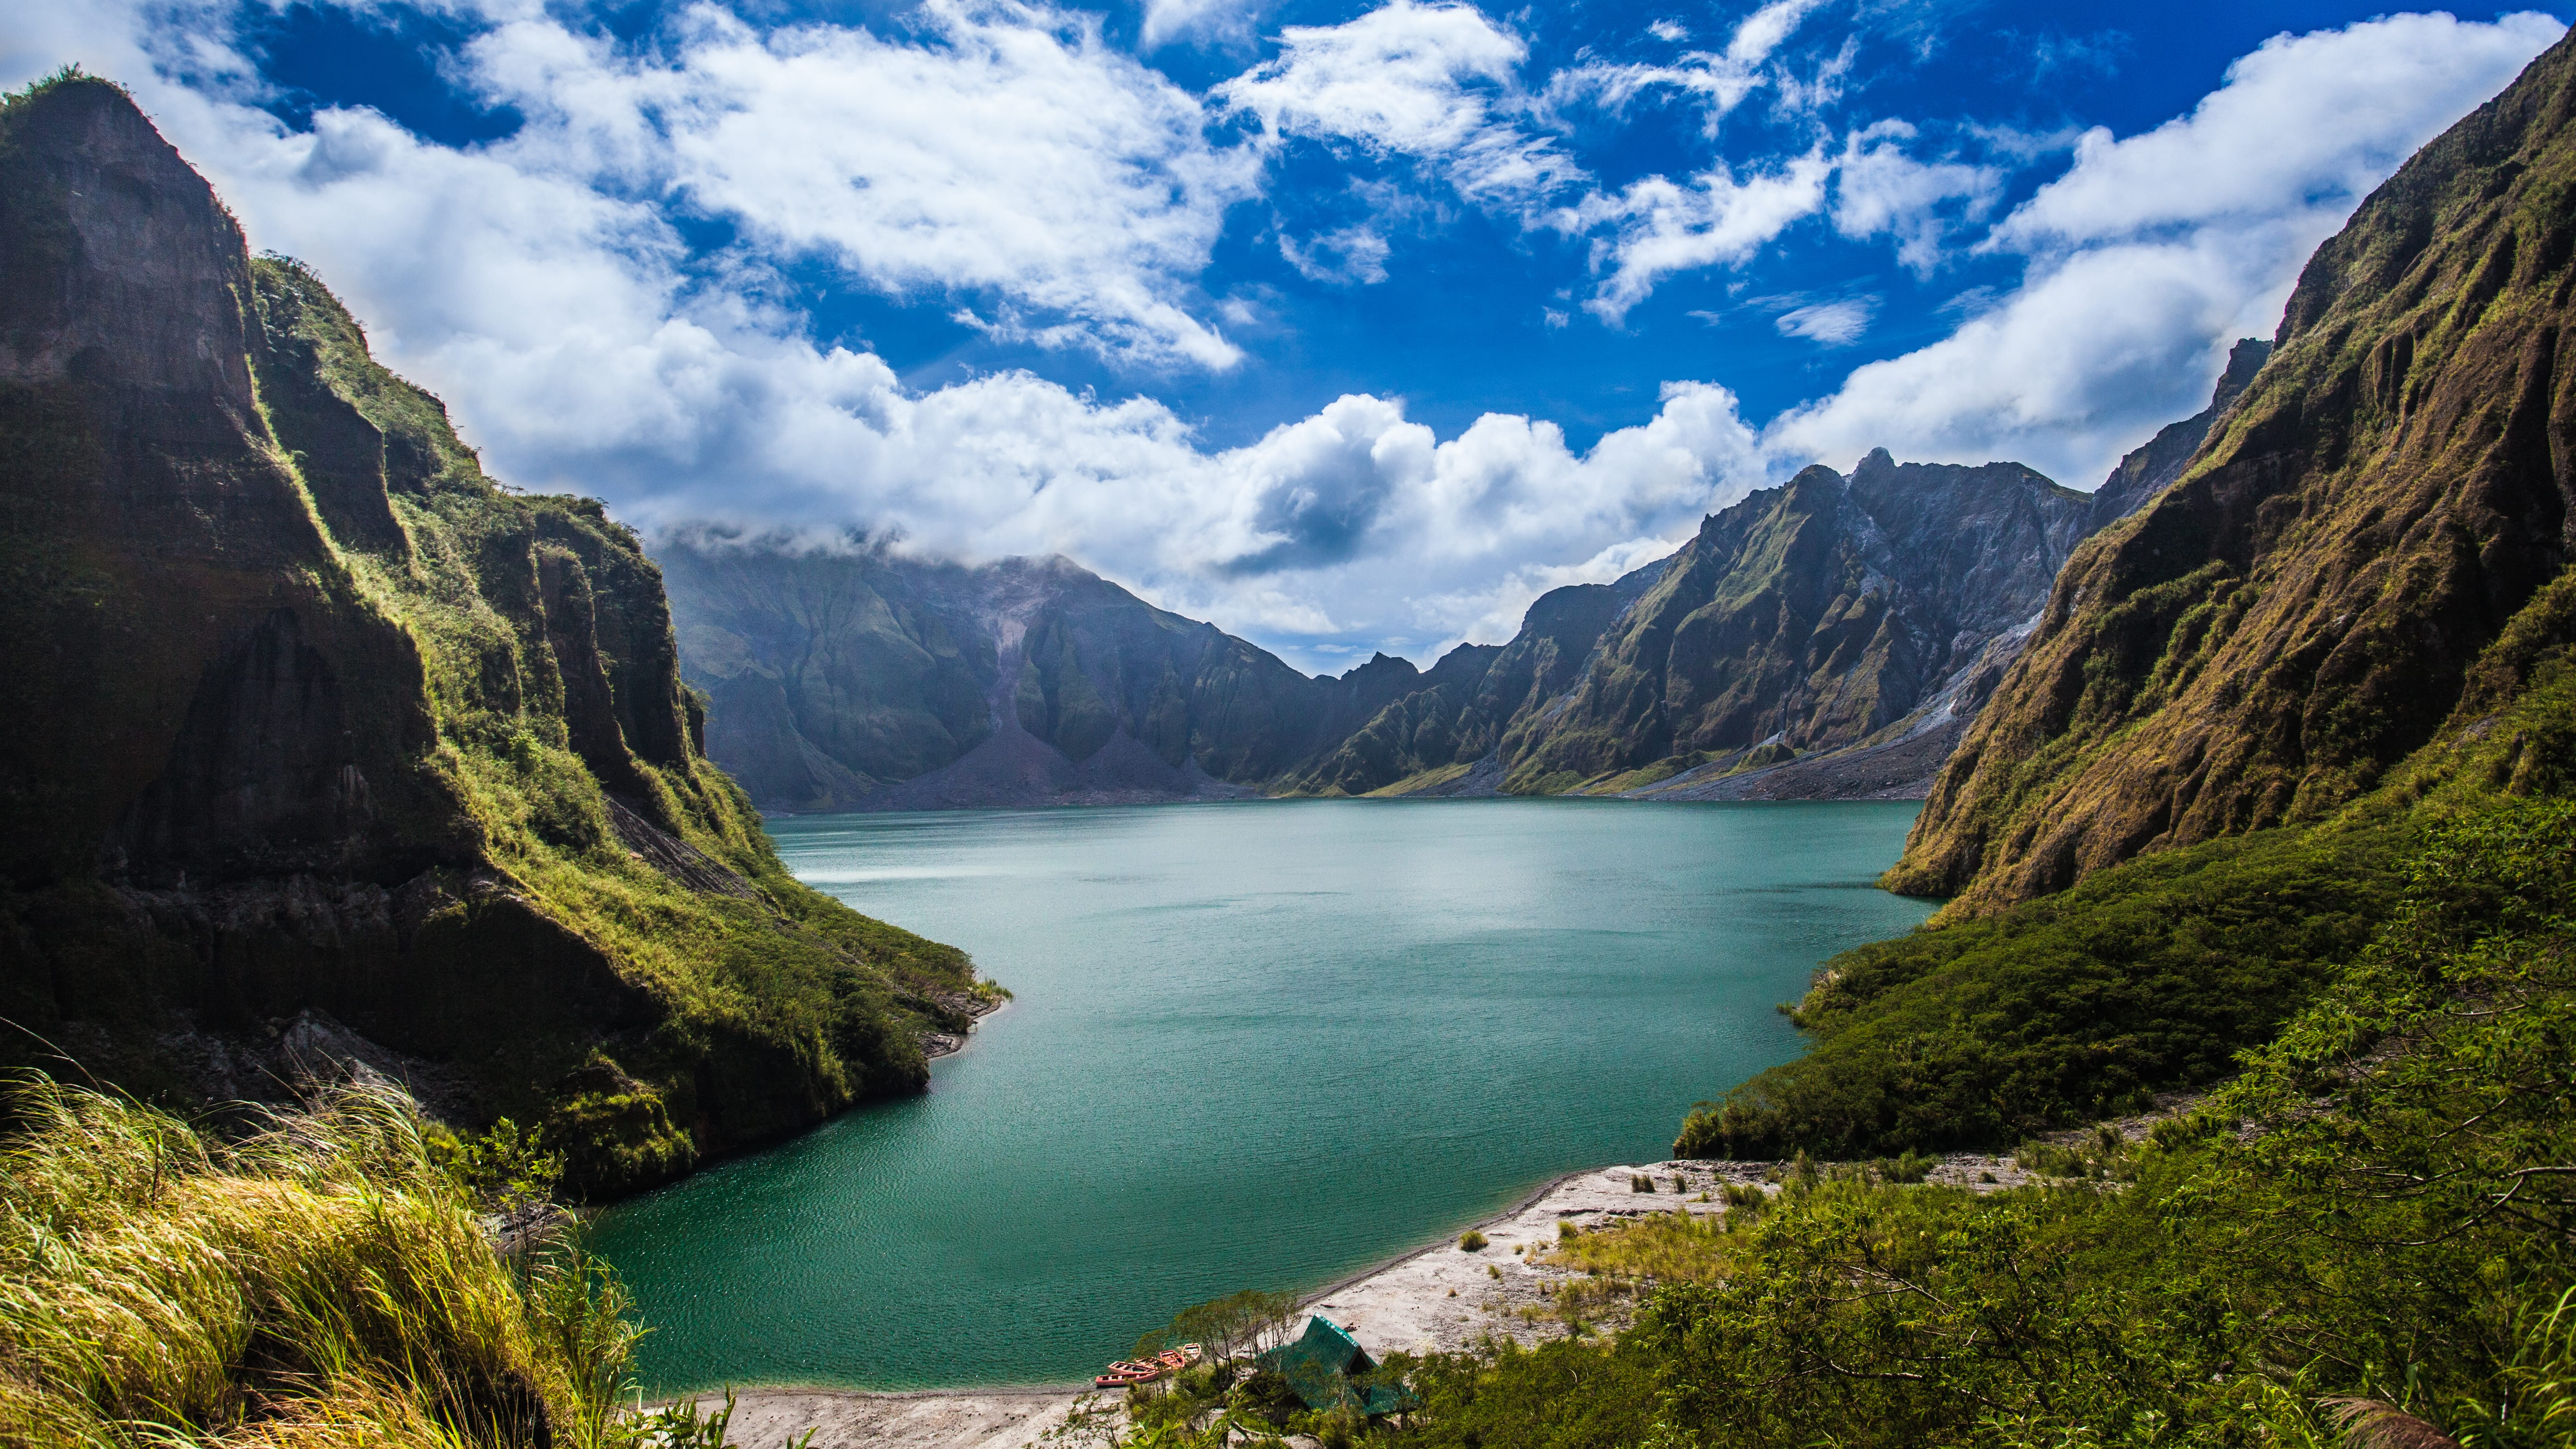 Postcard-worthy view of Mt. Pinatubo Crater Lake